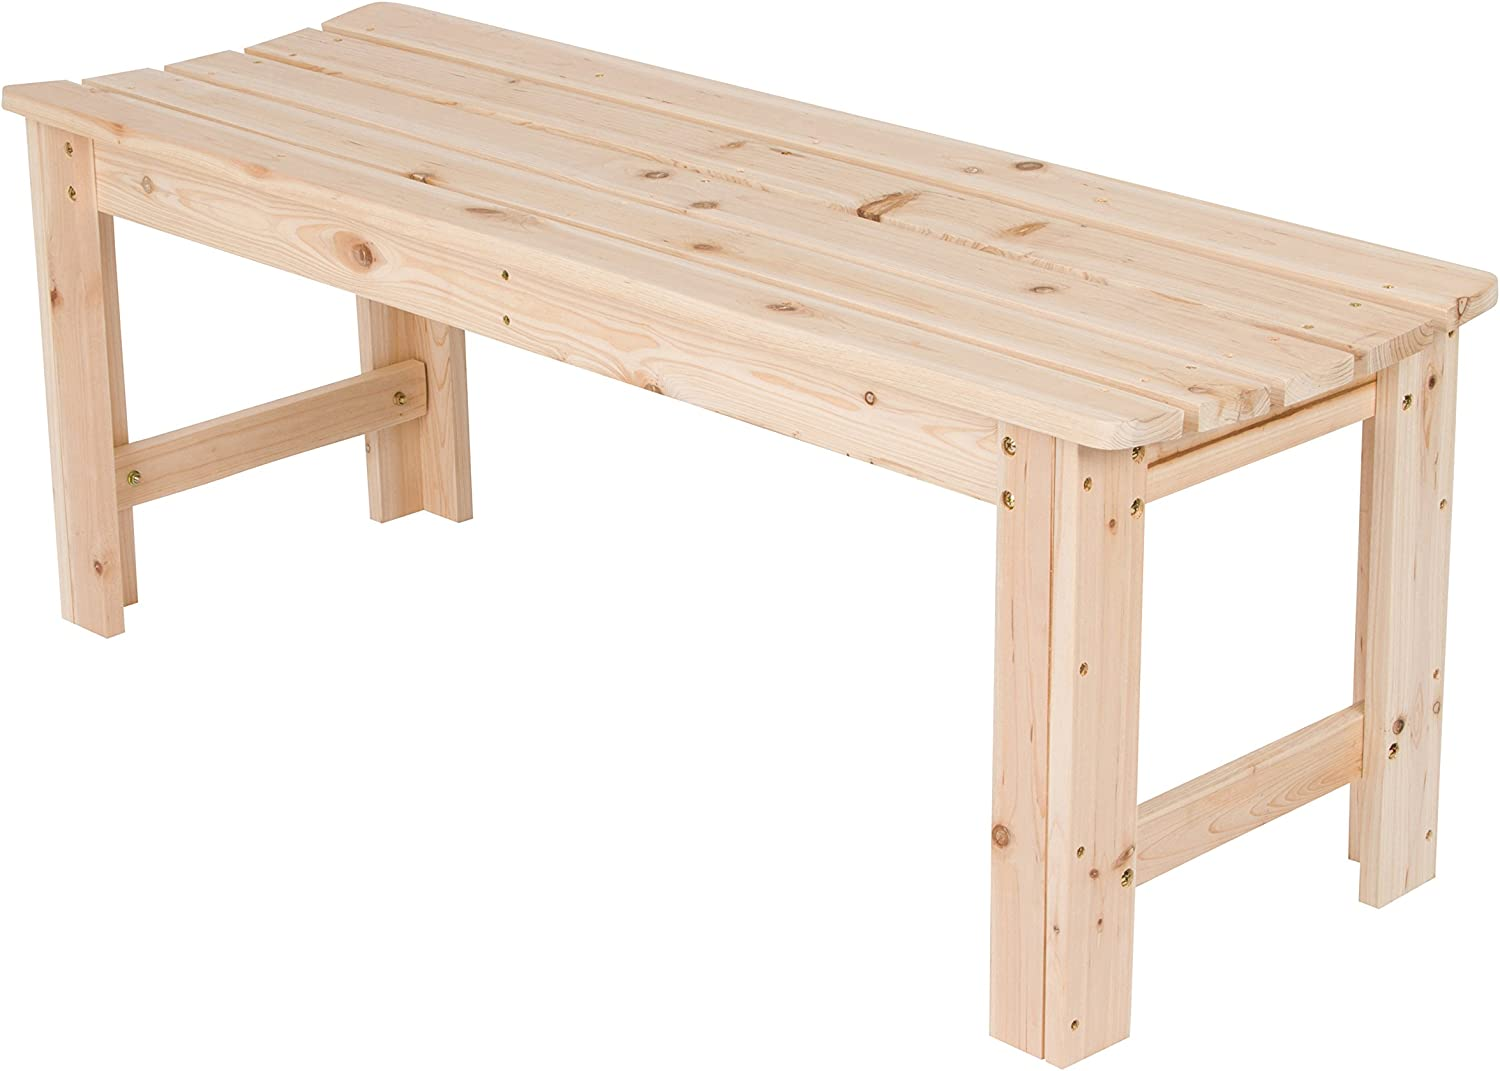 Shine Company Inc. 4204N Backless Garden Bench, 4 Ft, Natural